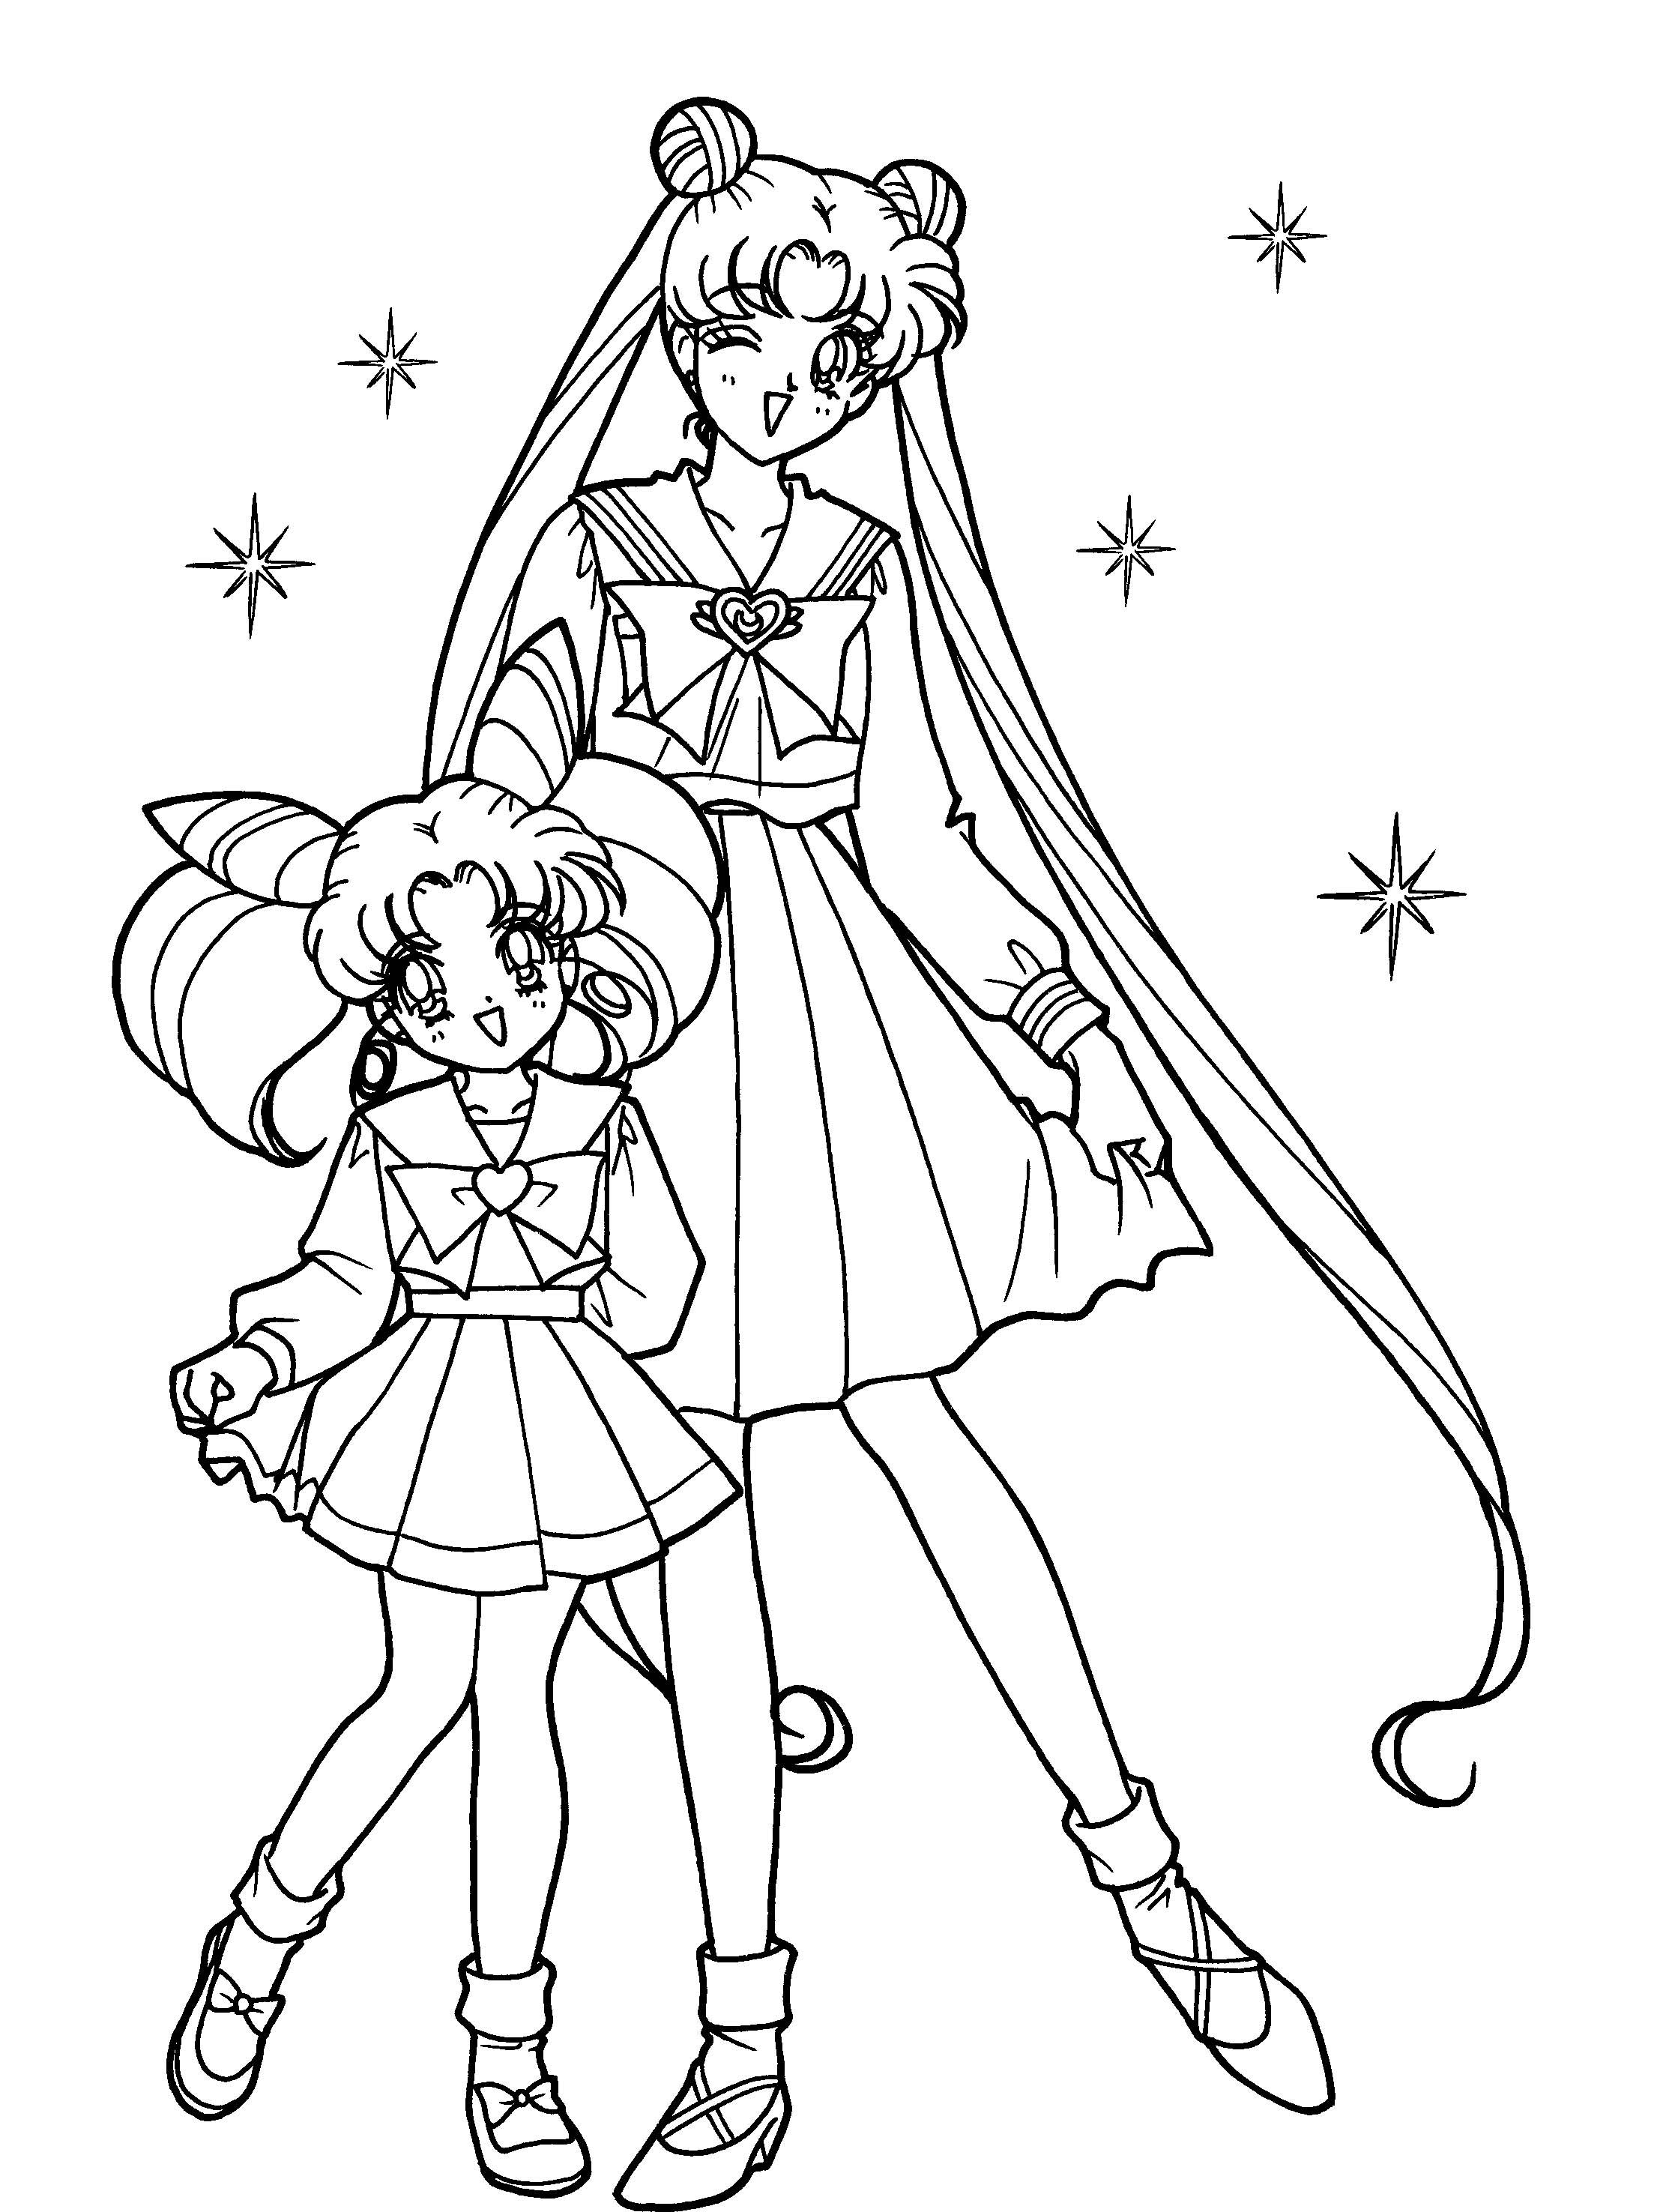 Sailor Moon Anime Coloring Pages